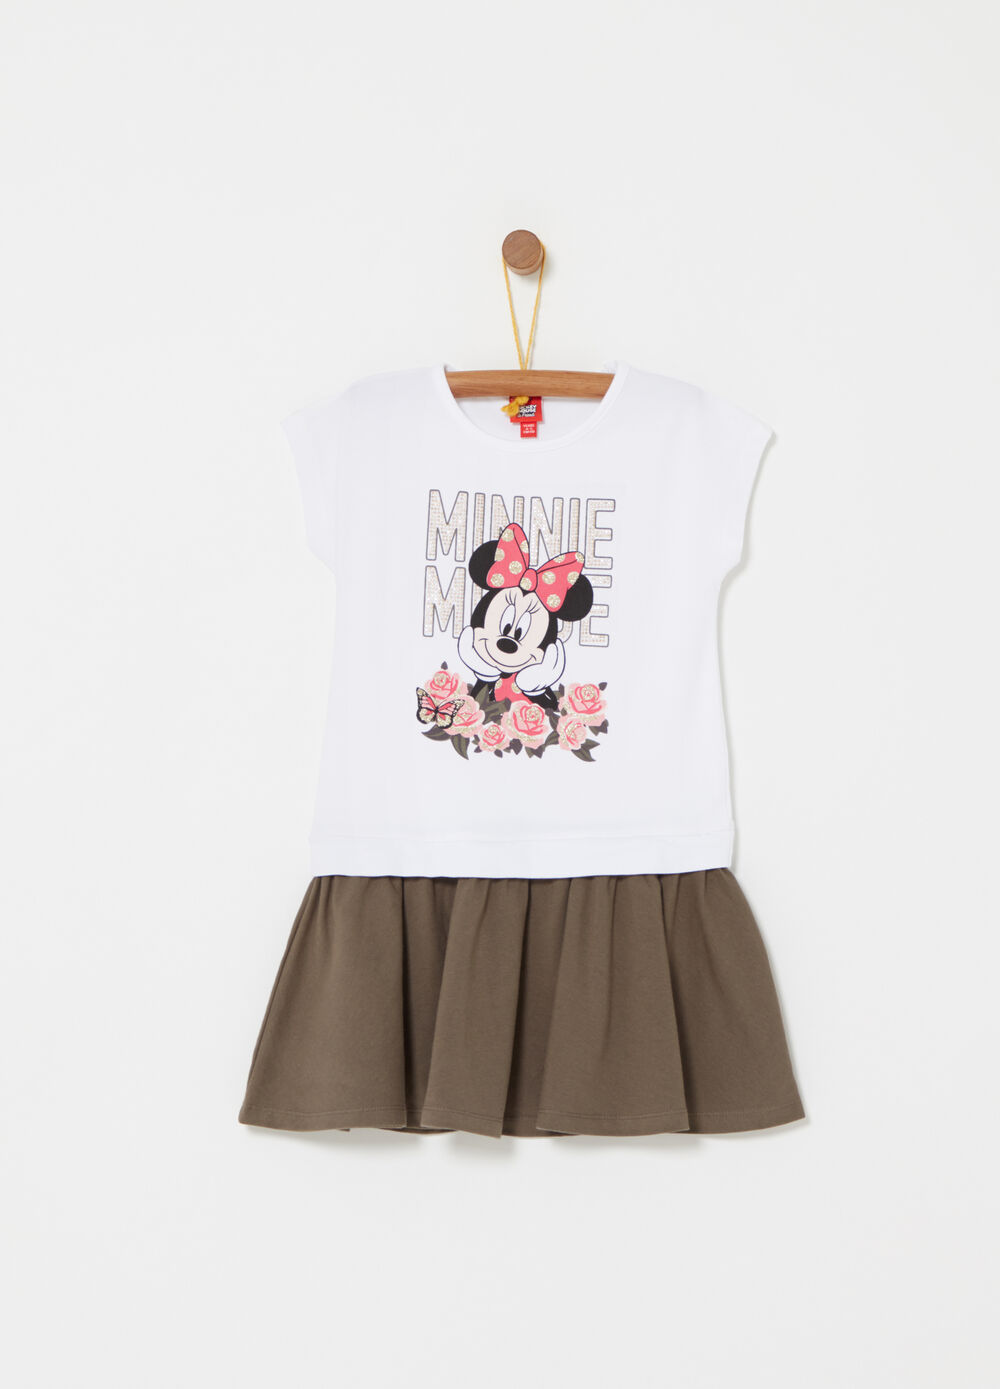 Sleeveless dress with Disney Minnie Mouse print